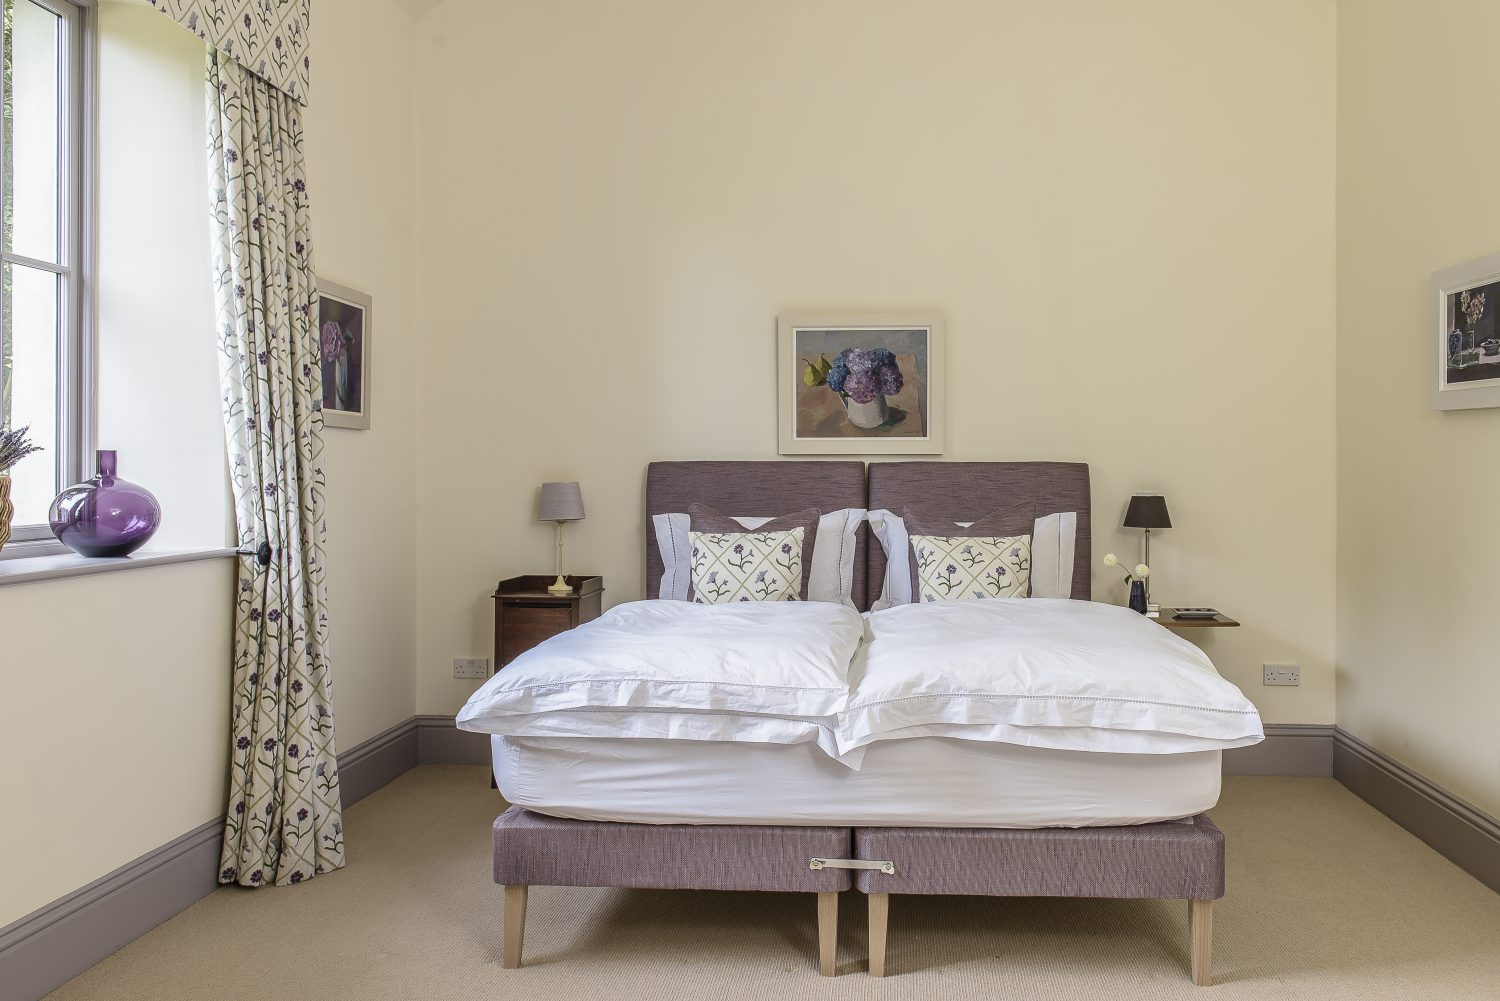 Situated in the main house, the Lilac Room exudes luxury and comfort.